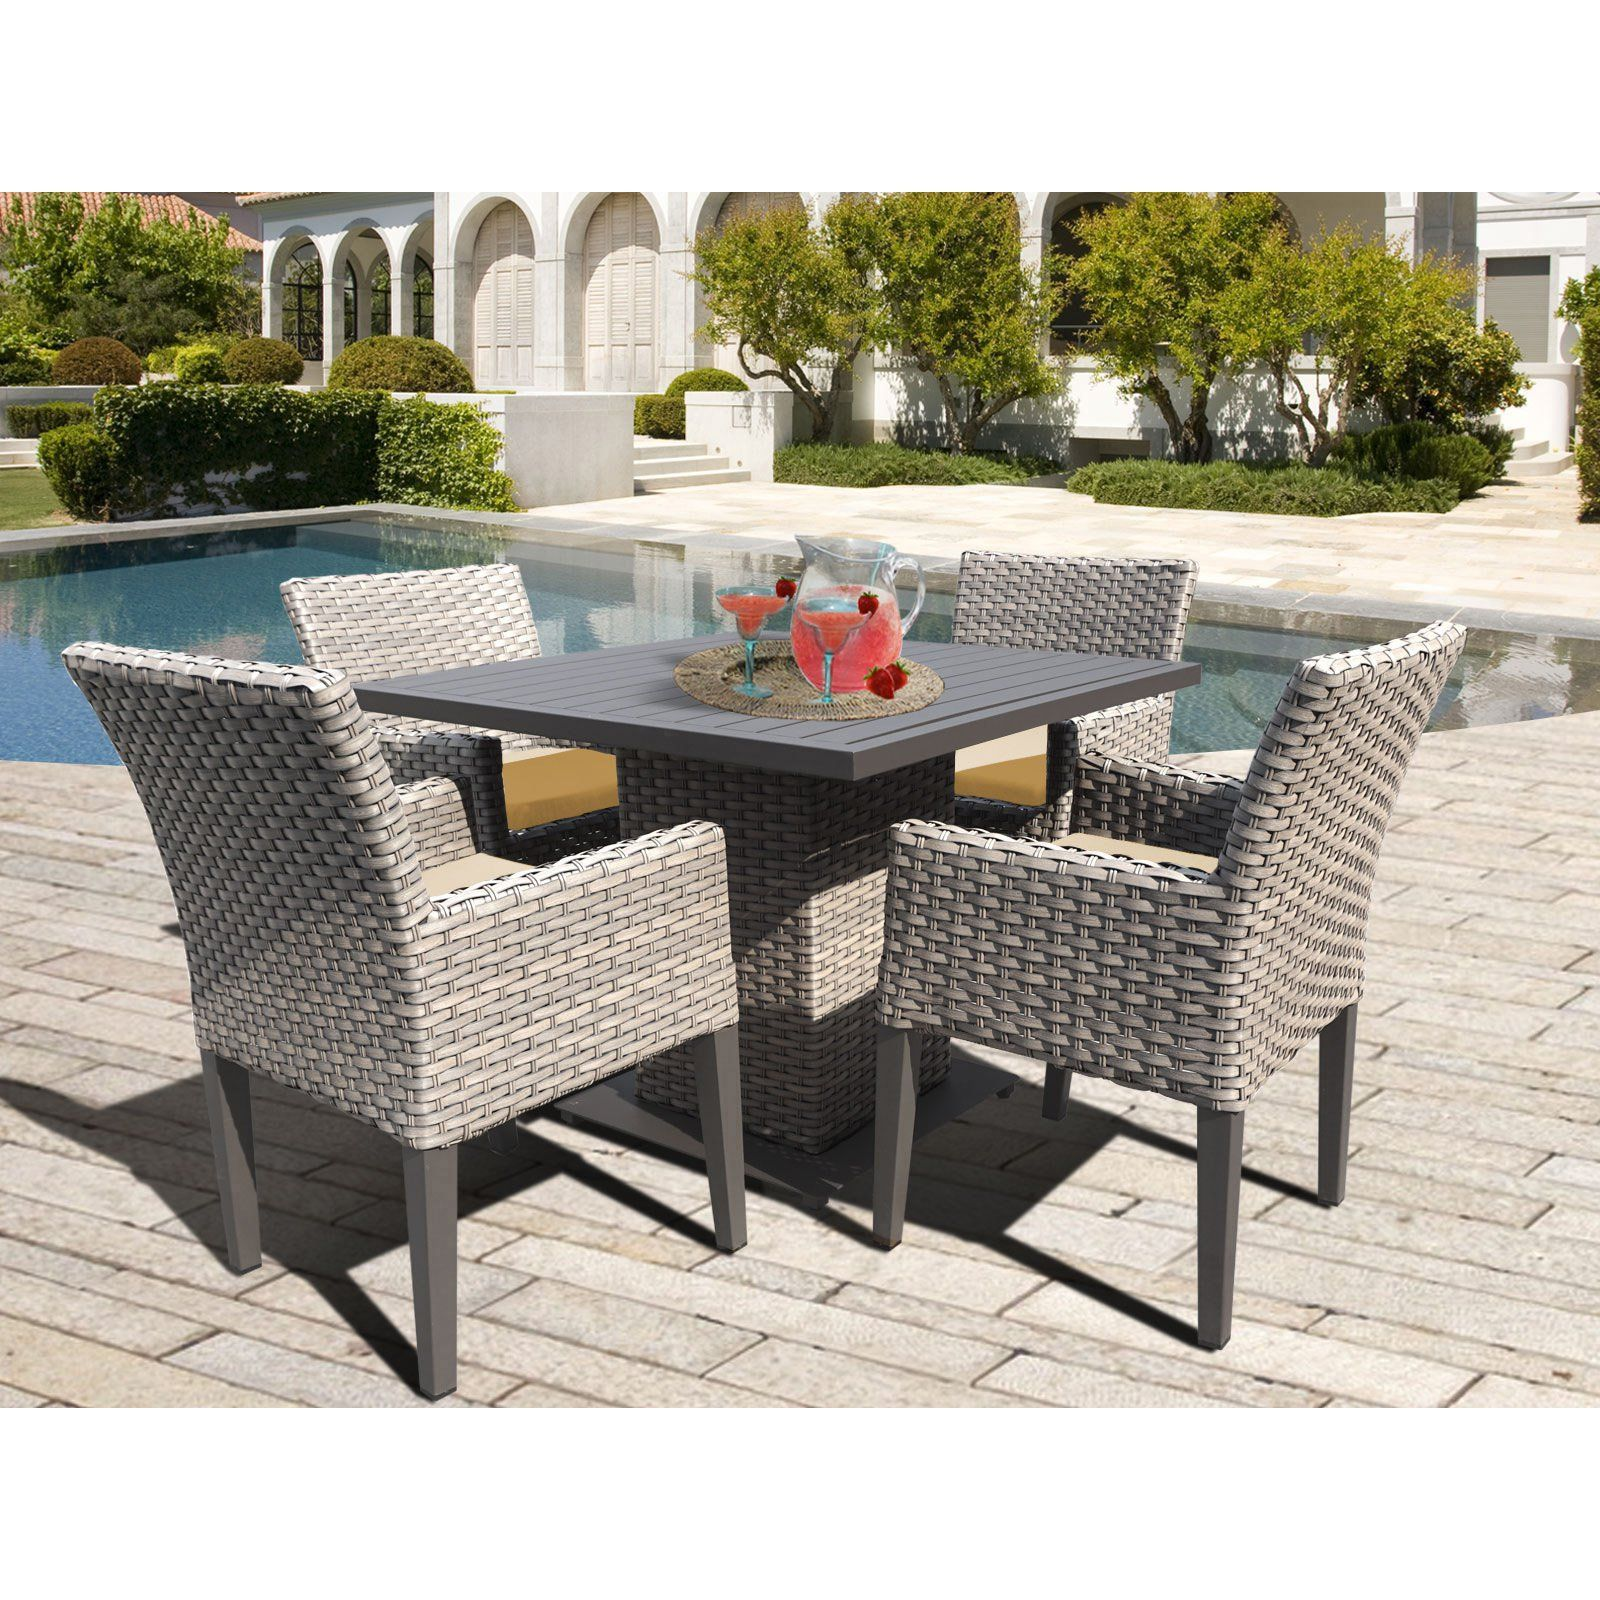 Tk Classics Oasis Wicker 5 Piece Outdoor Square Dining Table Set Wheat